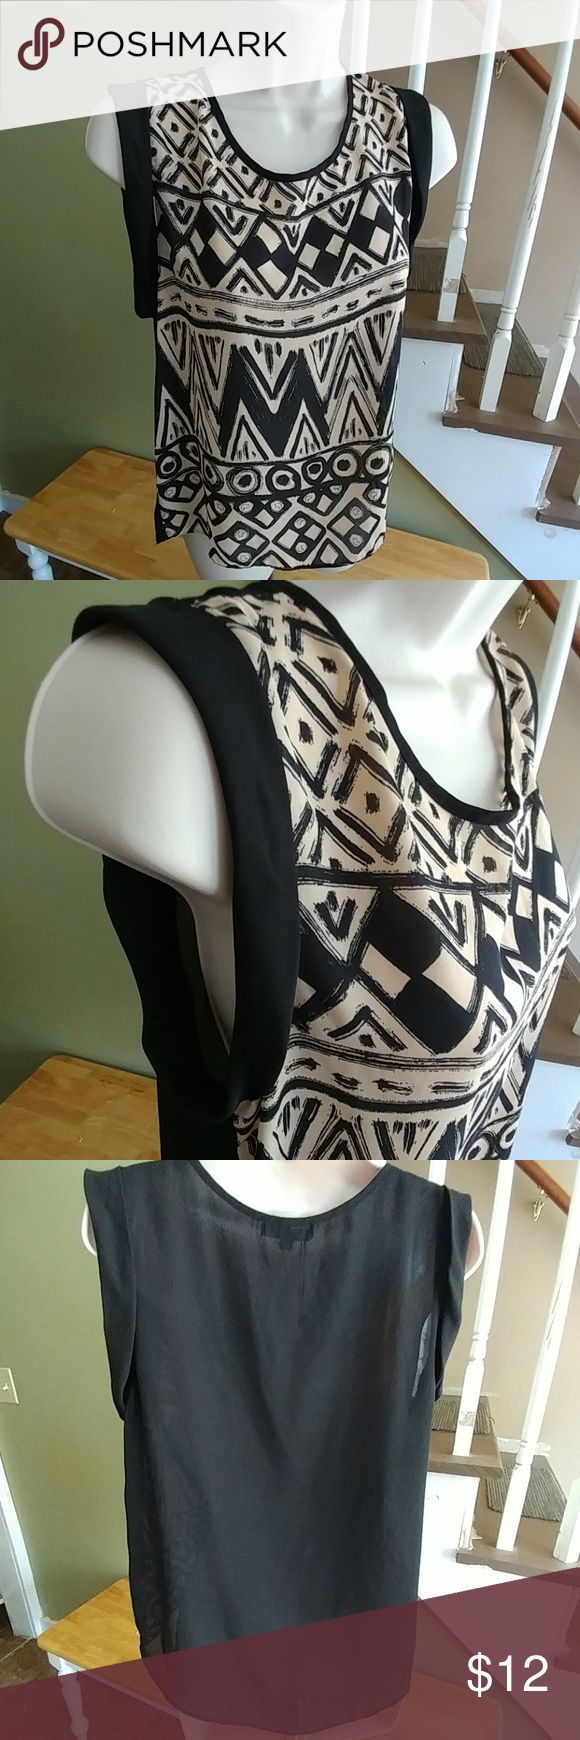 """Papermoon Sleeveless Hi-Lo Aztec Shirt-M NWOT New without tags! Length center back-26"""" Chest pit to pit-20"""" Medium Semi-Sheer Back paper moon Tops Blouses"""